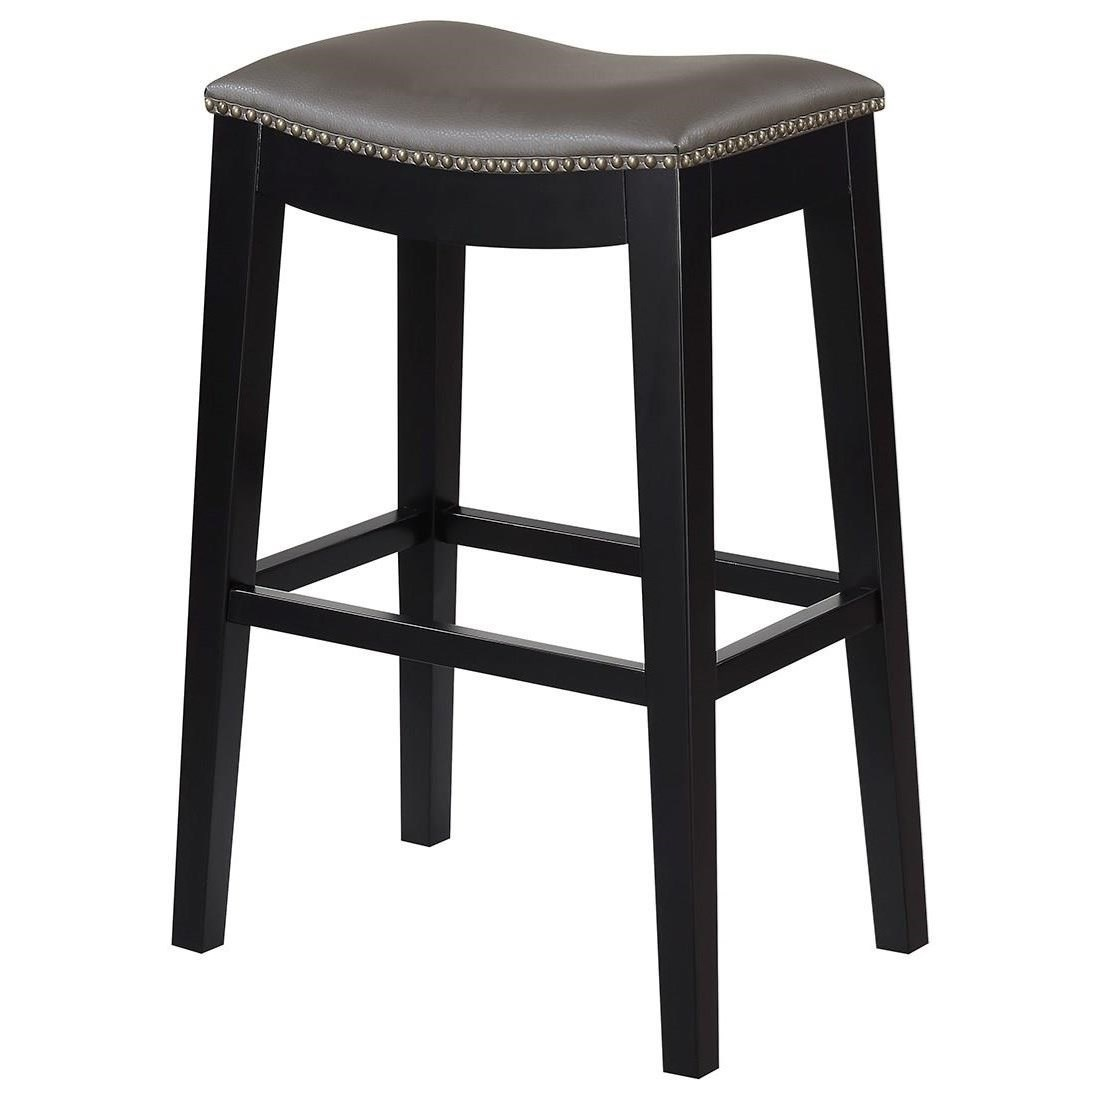 Briar 30'' Bar Stool  by Emerald at Northeast Factory Direct